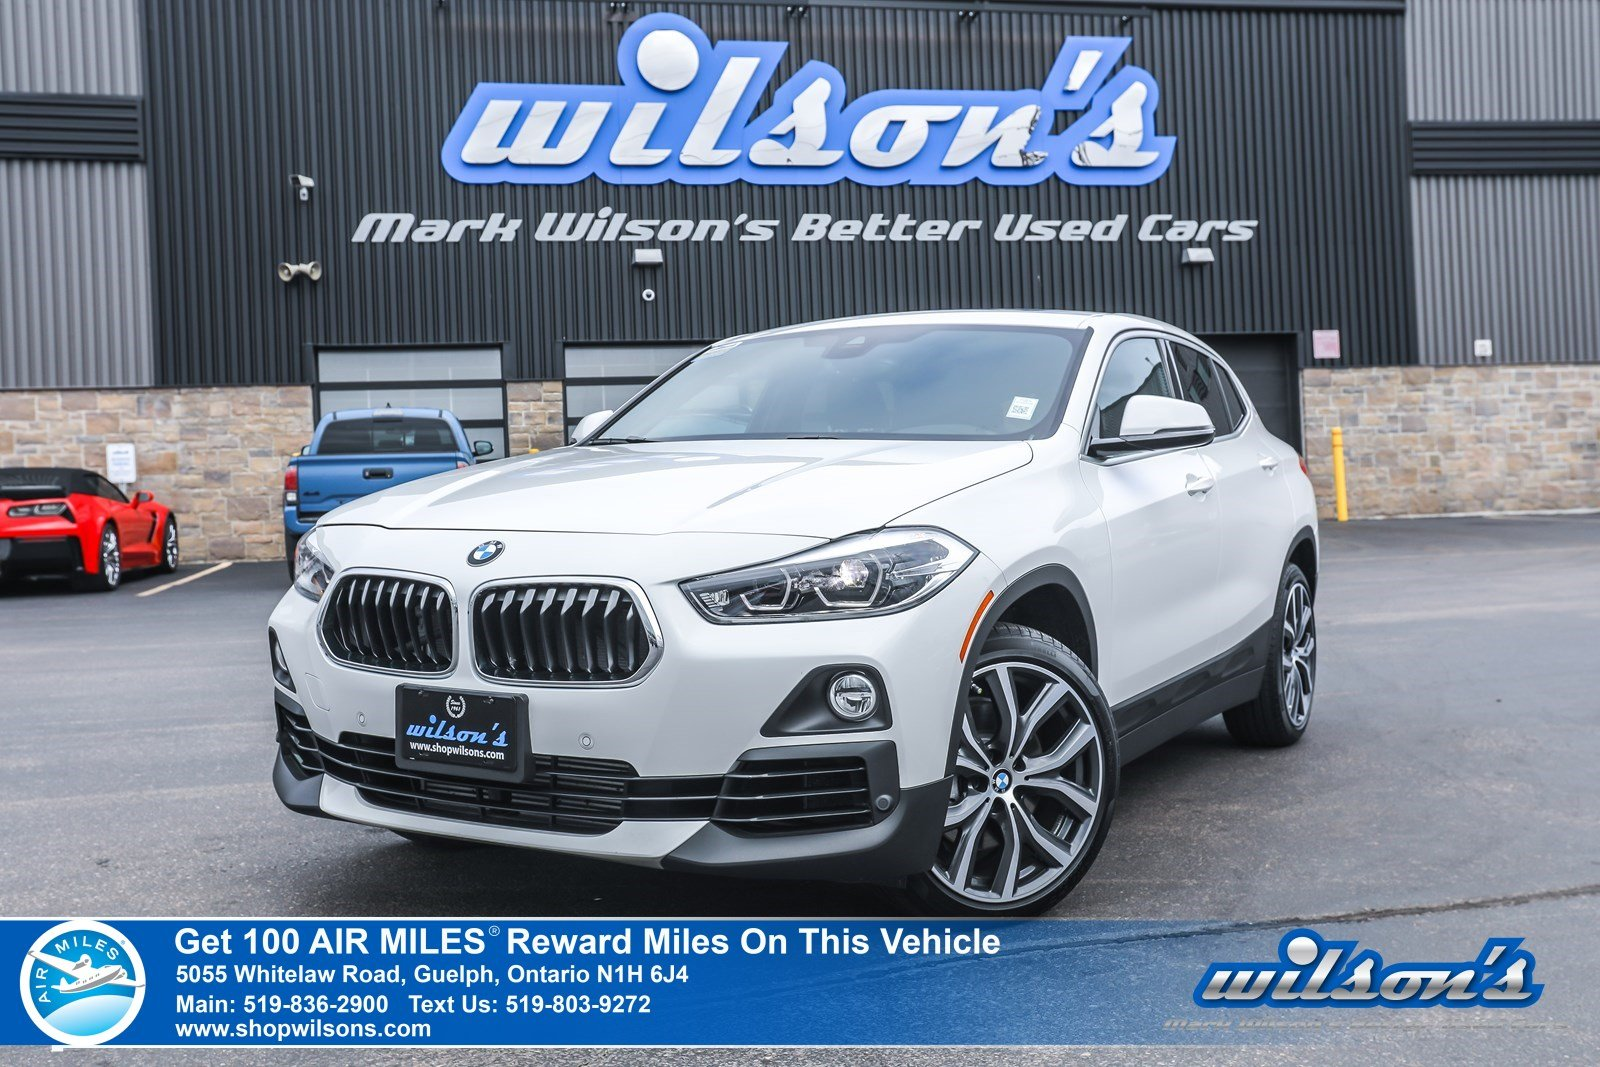 Certified Pre-Owned 2019 BMW X2 xDrive28i AWD Used – Leather, Sunroof, Navigation, Apple CarPlay, Bluetooth, Alloys and more!